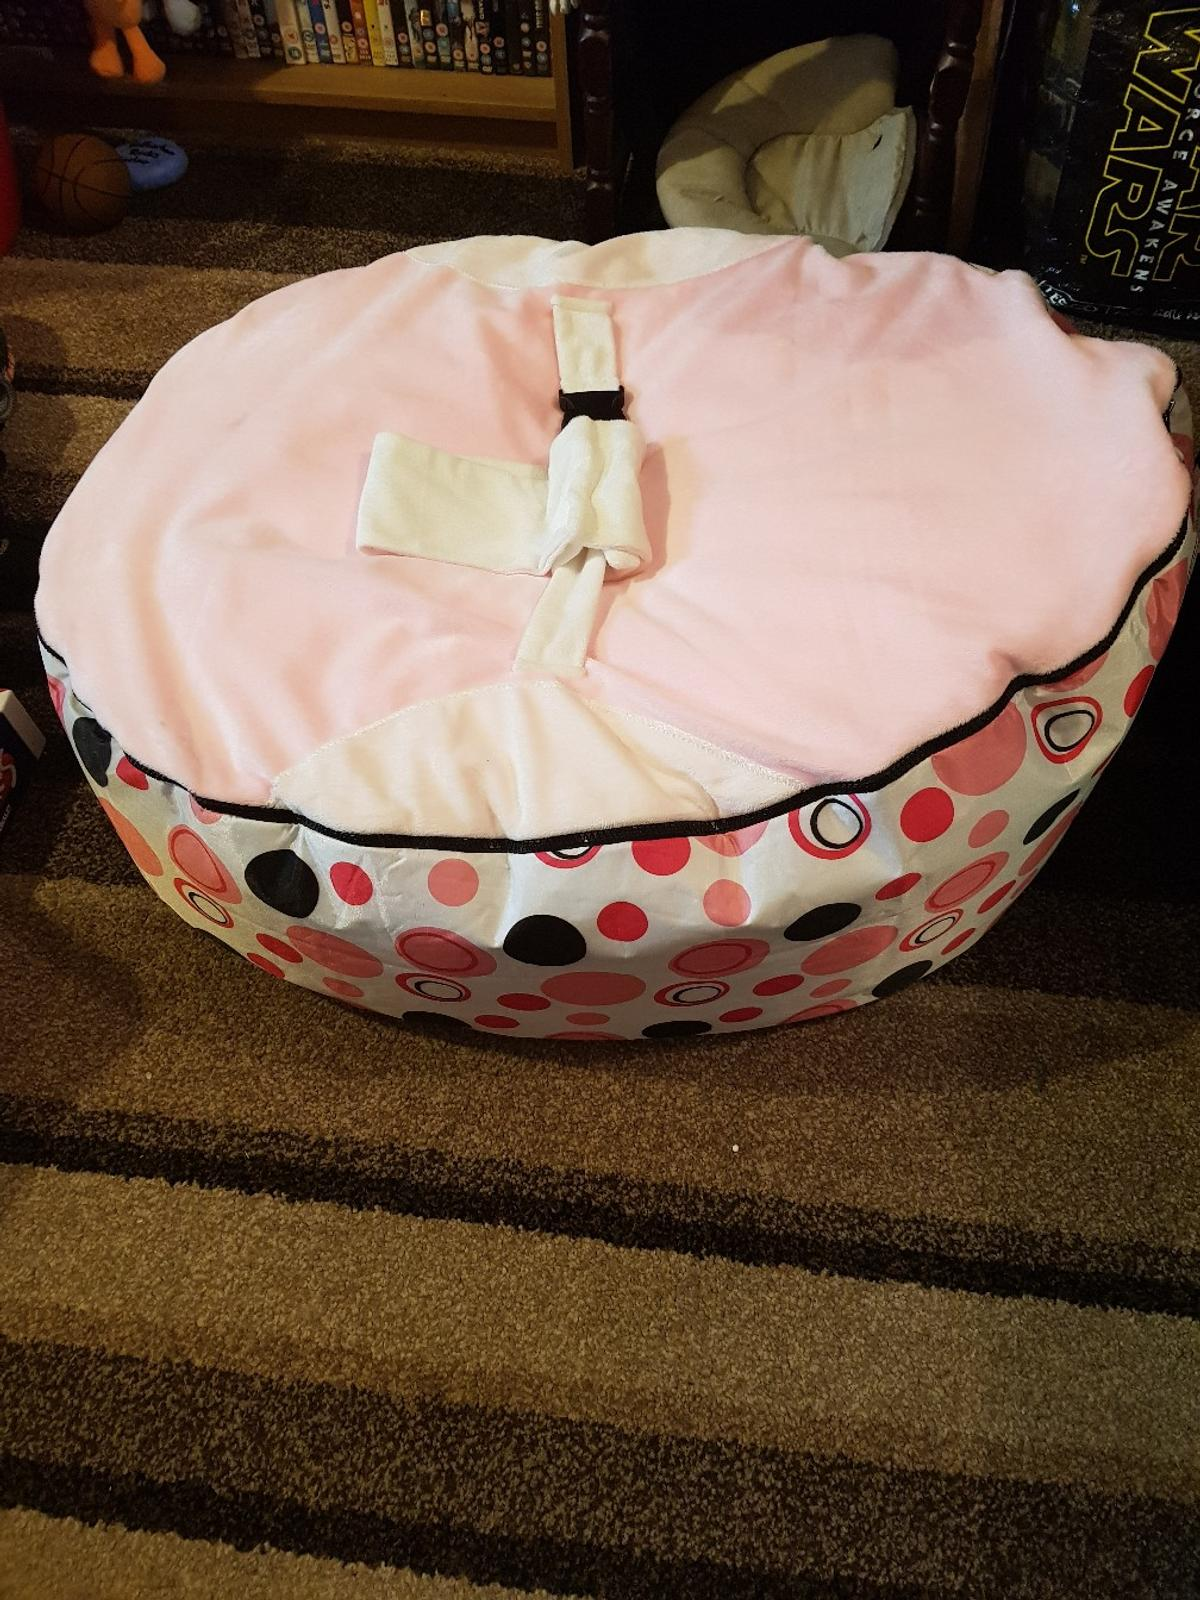 Phenomenal Baby Bean Bag In S62 Rotherham For 15 00 For Sale Shpock Bralicious Painted Fabric Chair Ideas Braliciousco